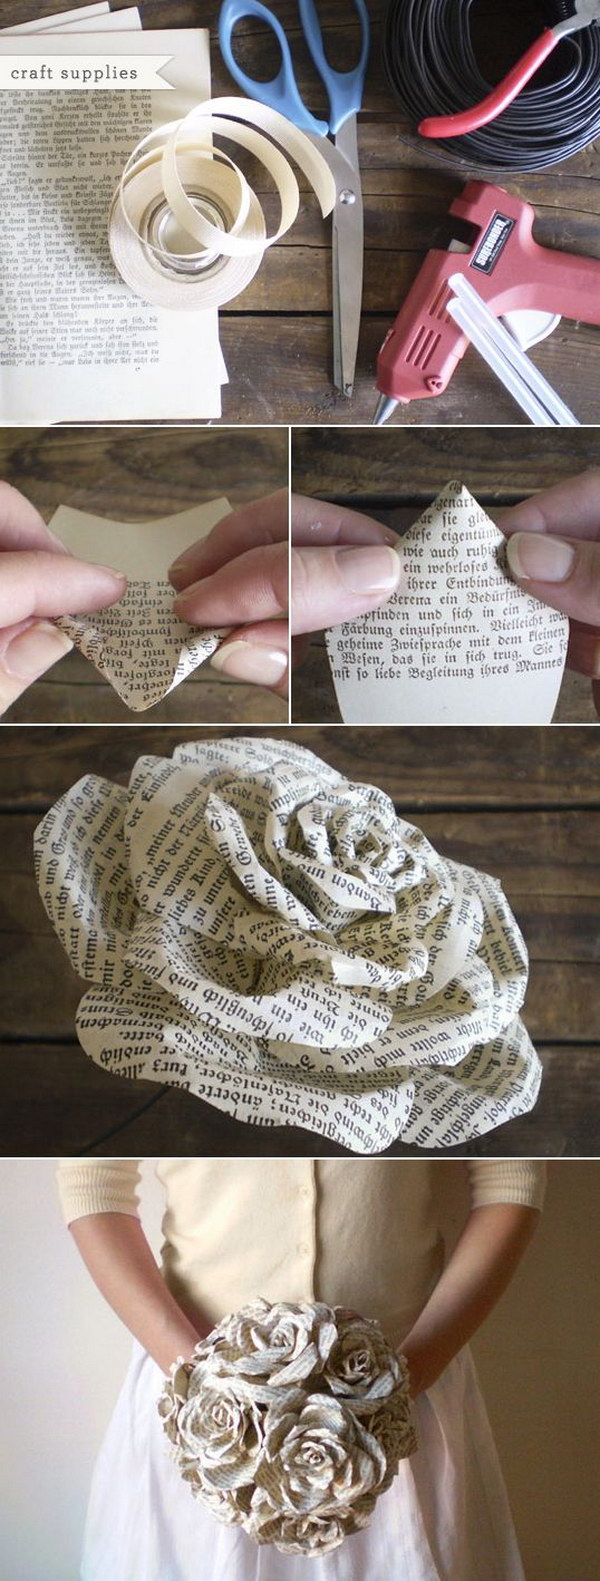 Easy and beautiful diy projects made with old books for Hand works with waste things